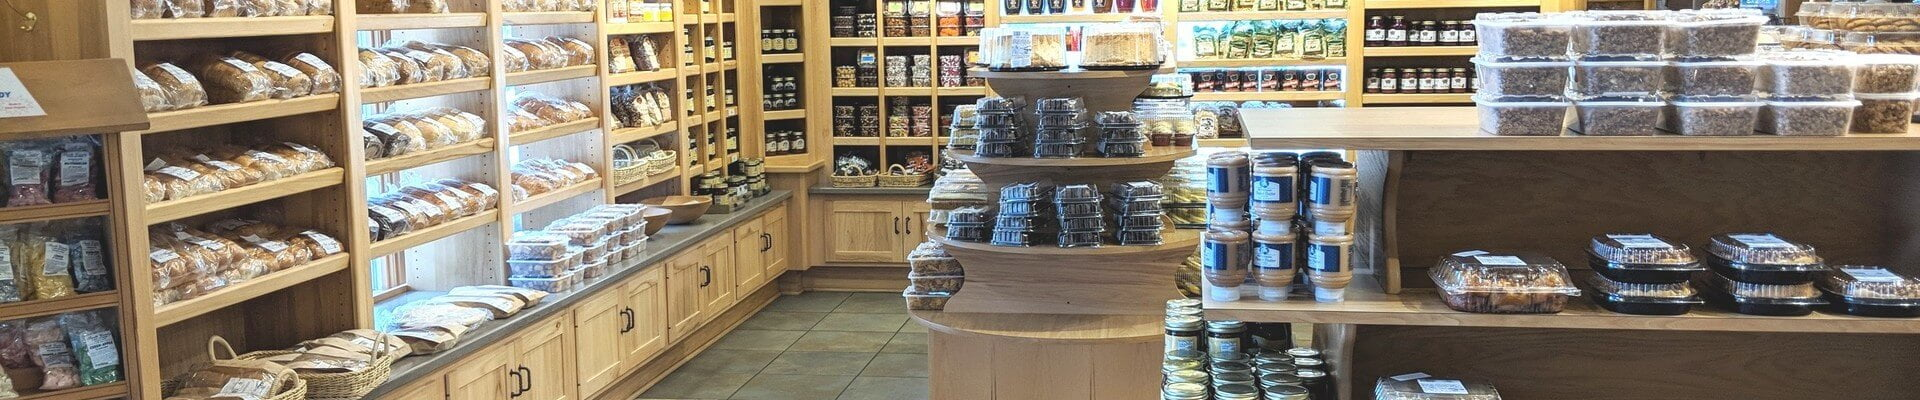 Commercial Cabinetry Bakery